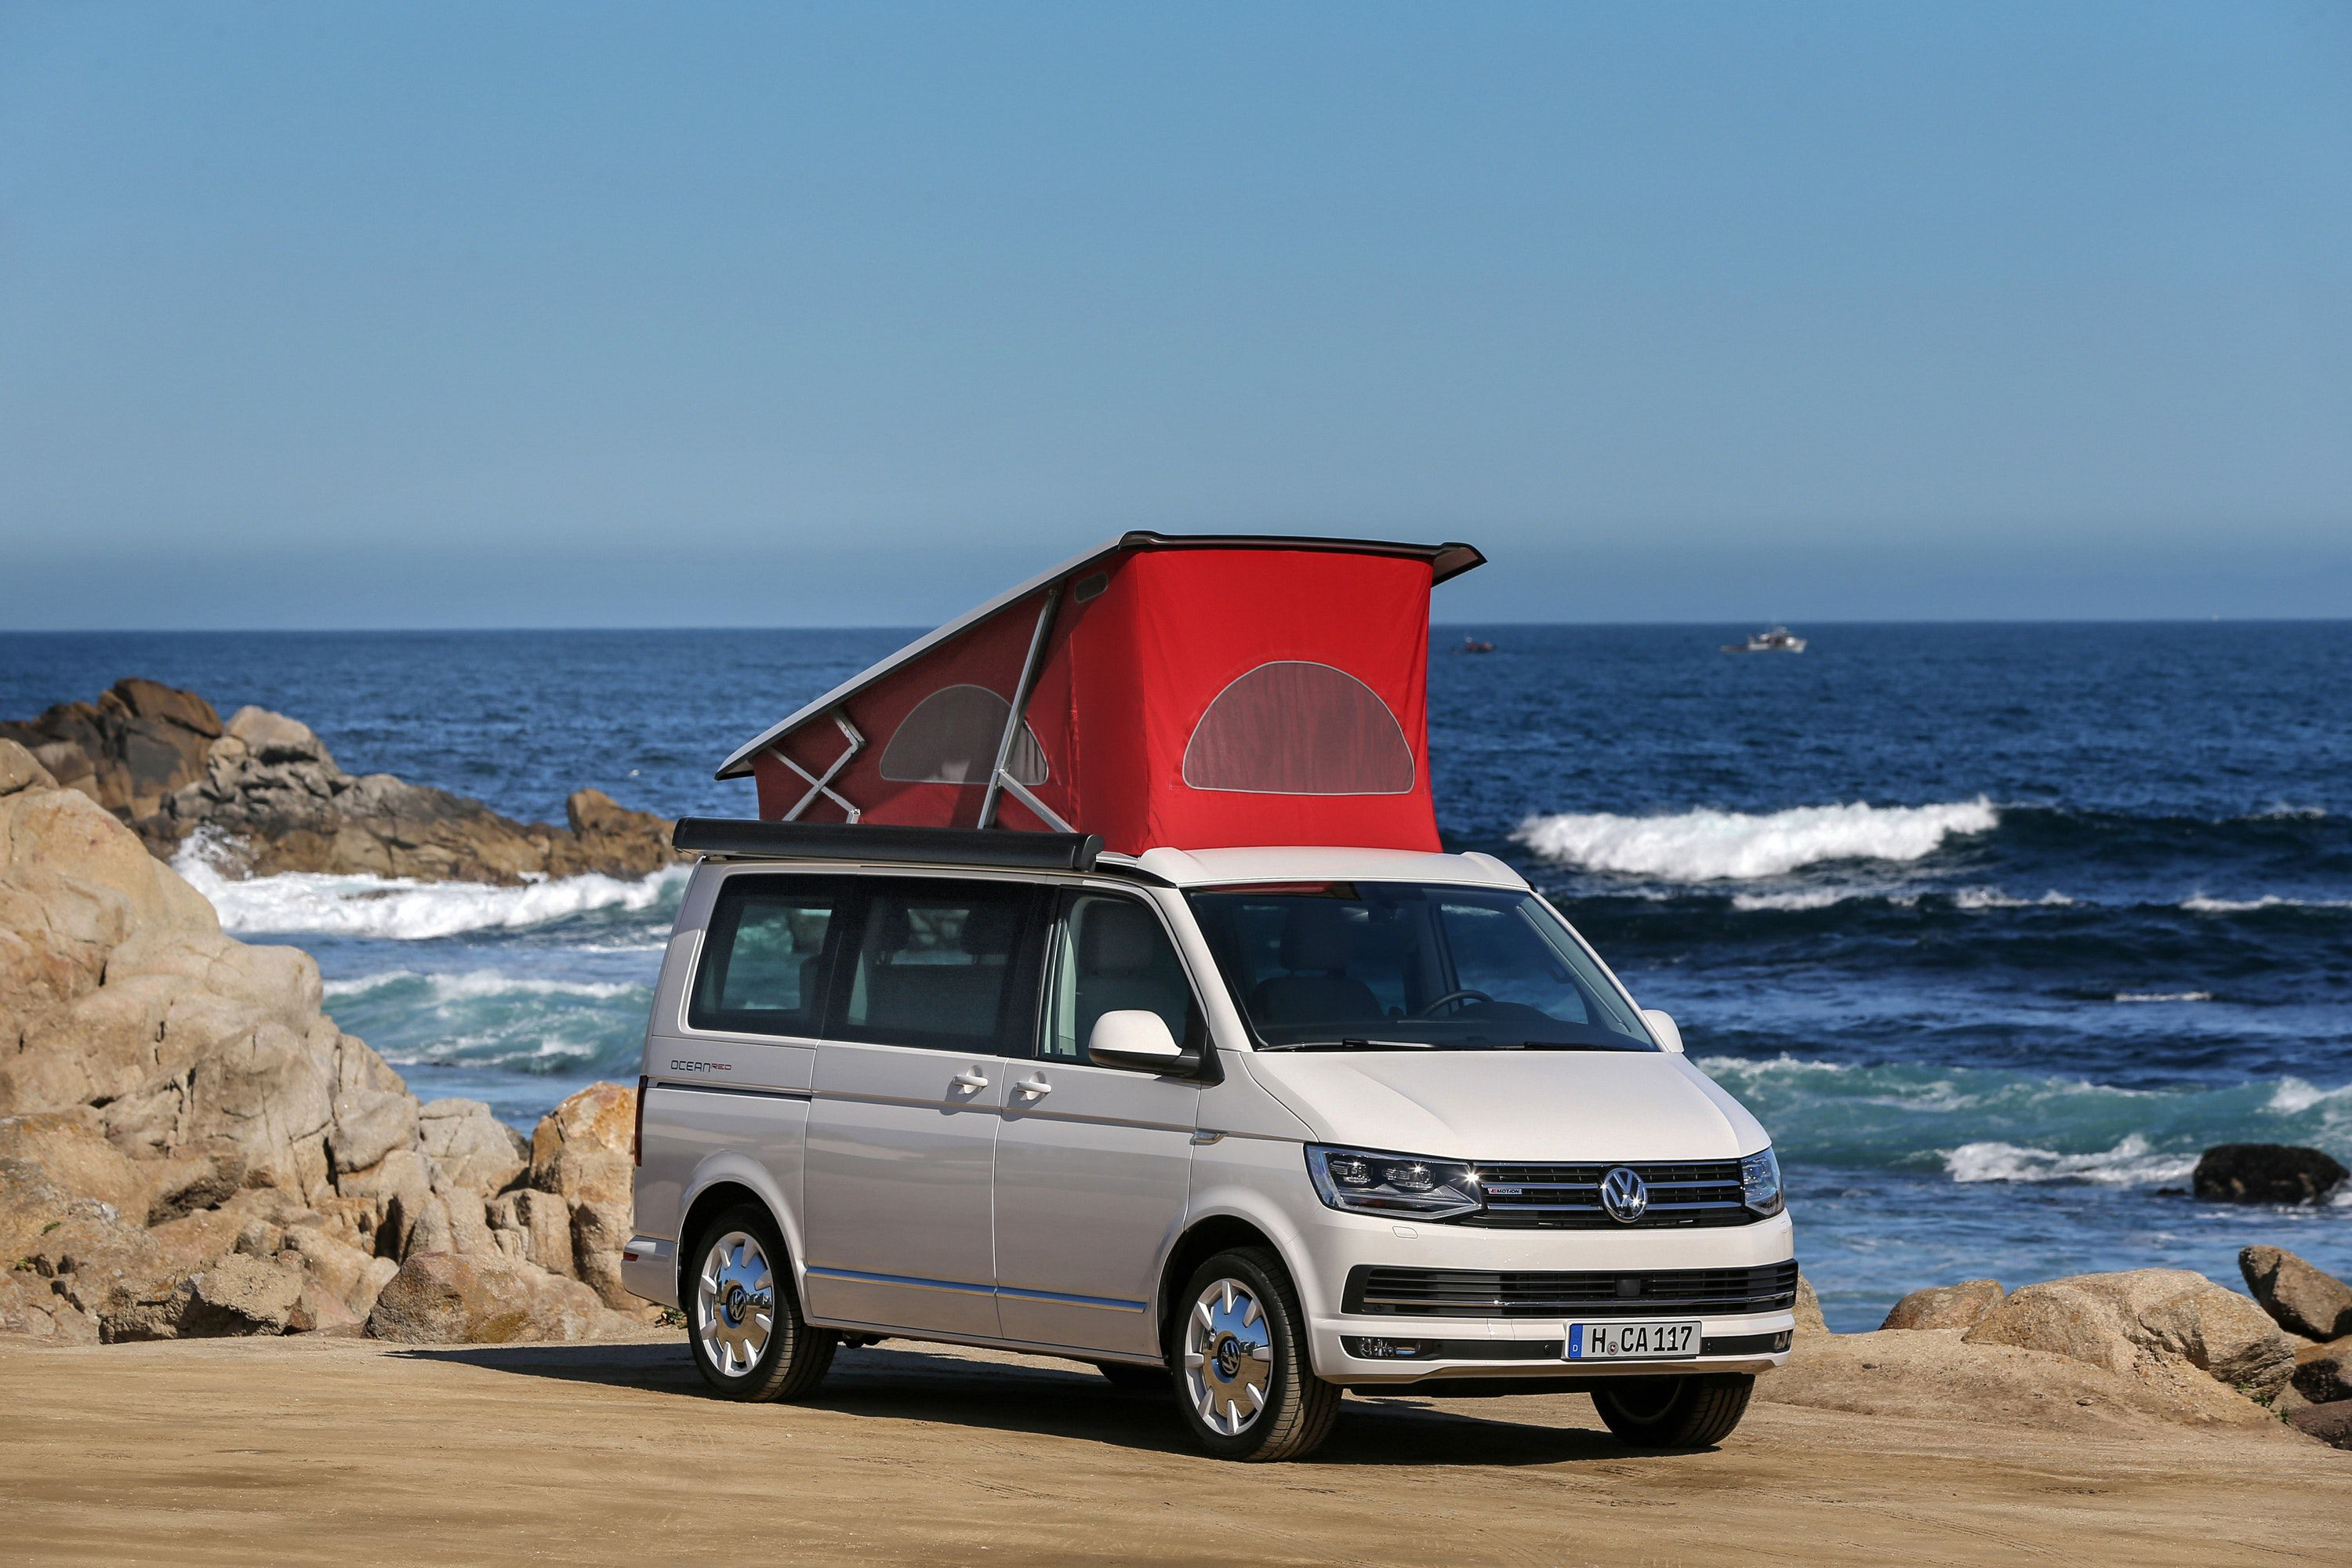 VW California campervan with roof up